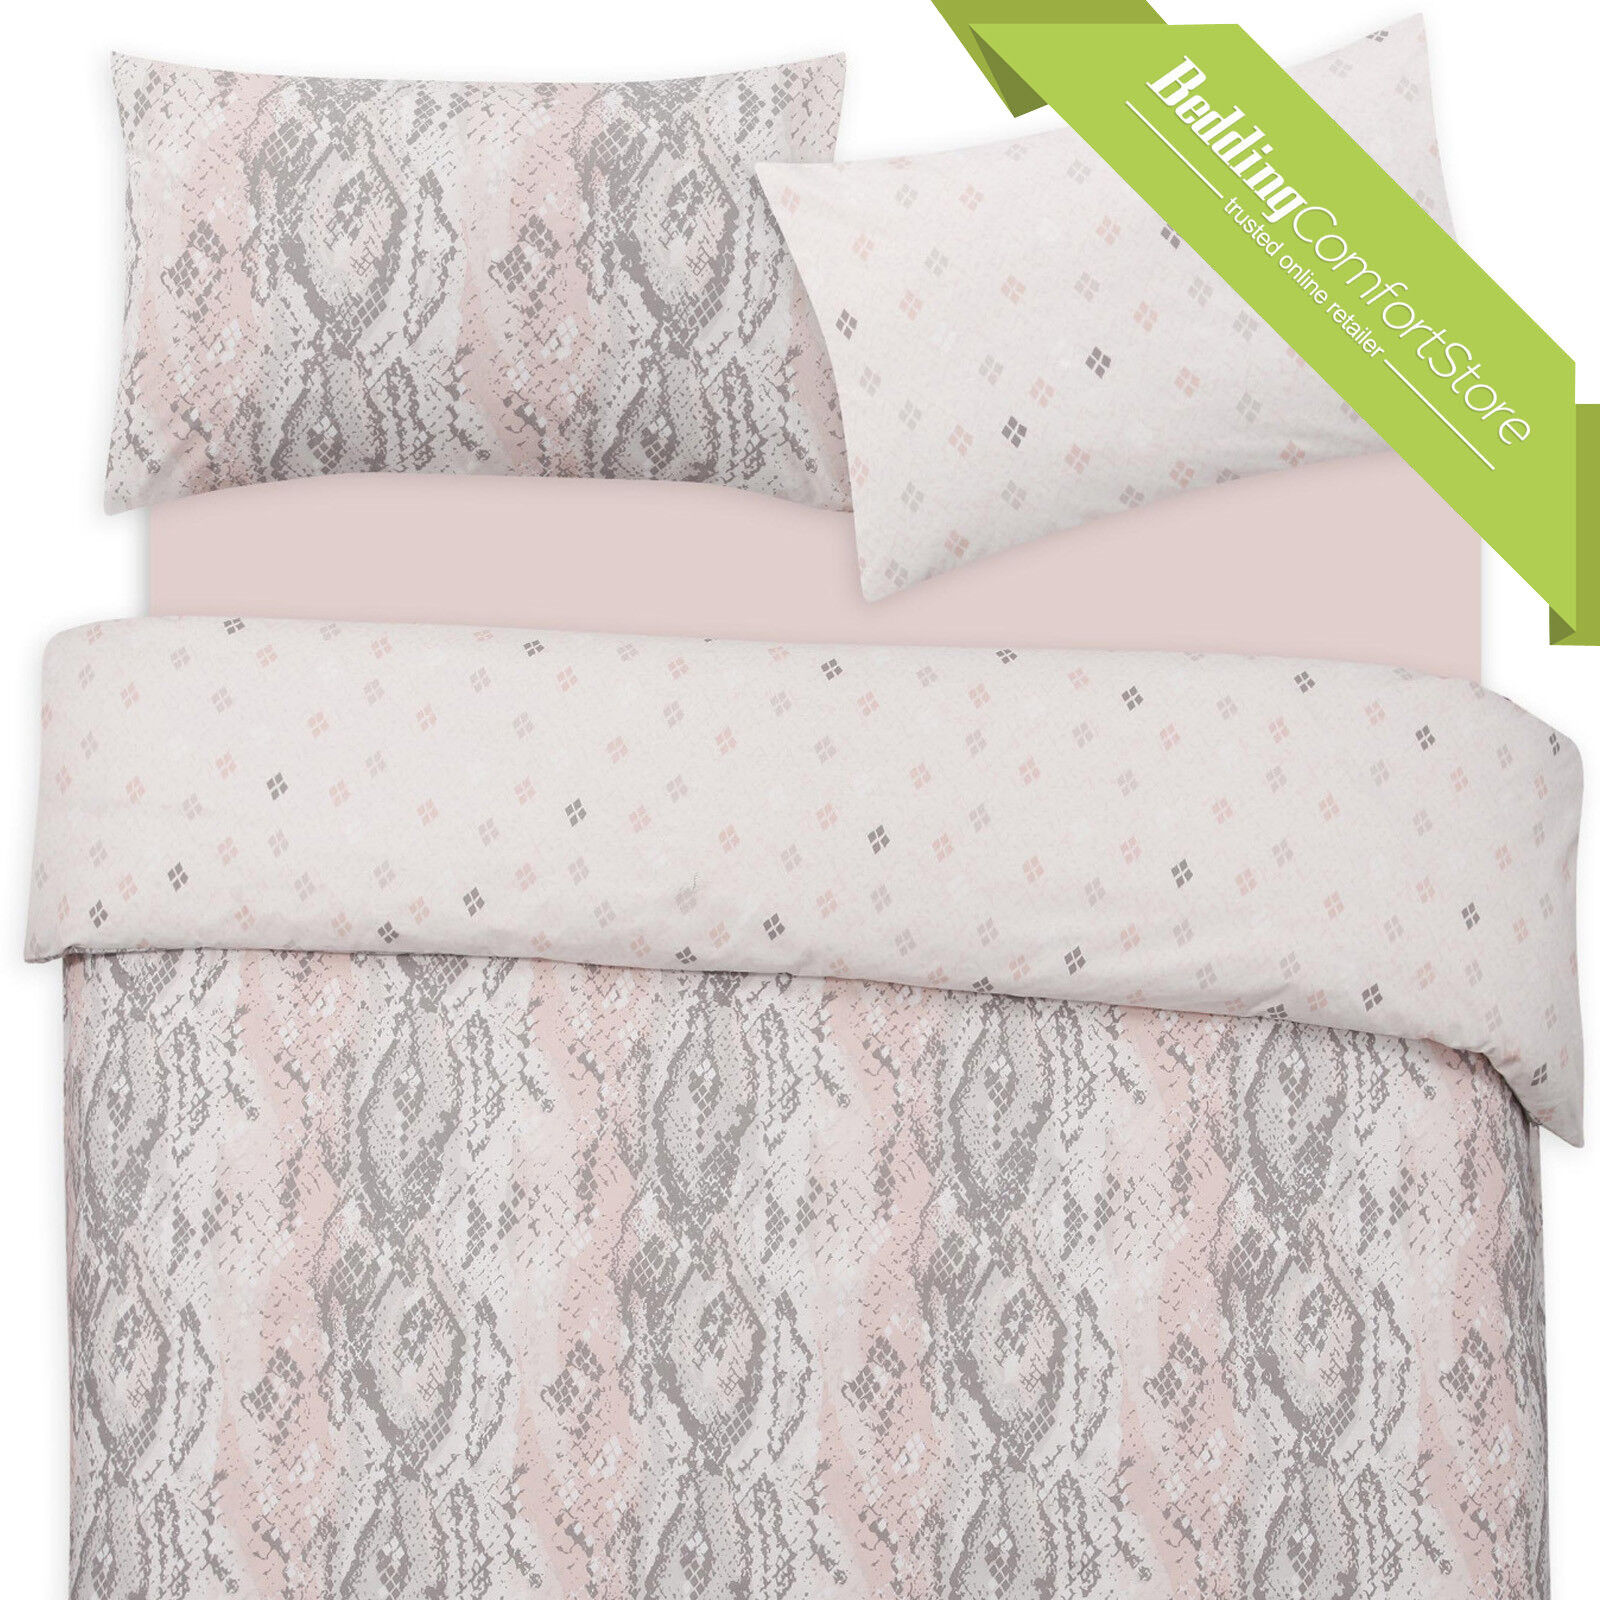 NEW LUXURIOUS PRINTED SNAKE SKIN REVERSIBLE DUVET QUILT COVER WITH PILLOWCASE